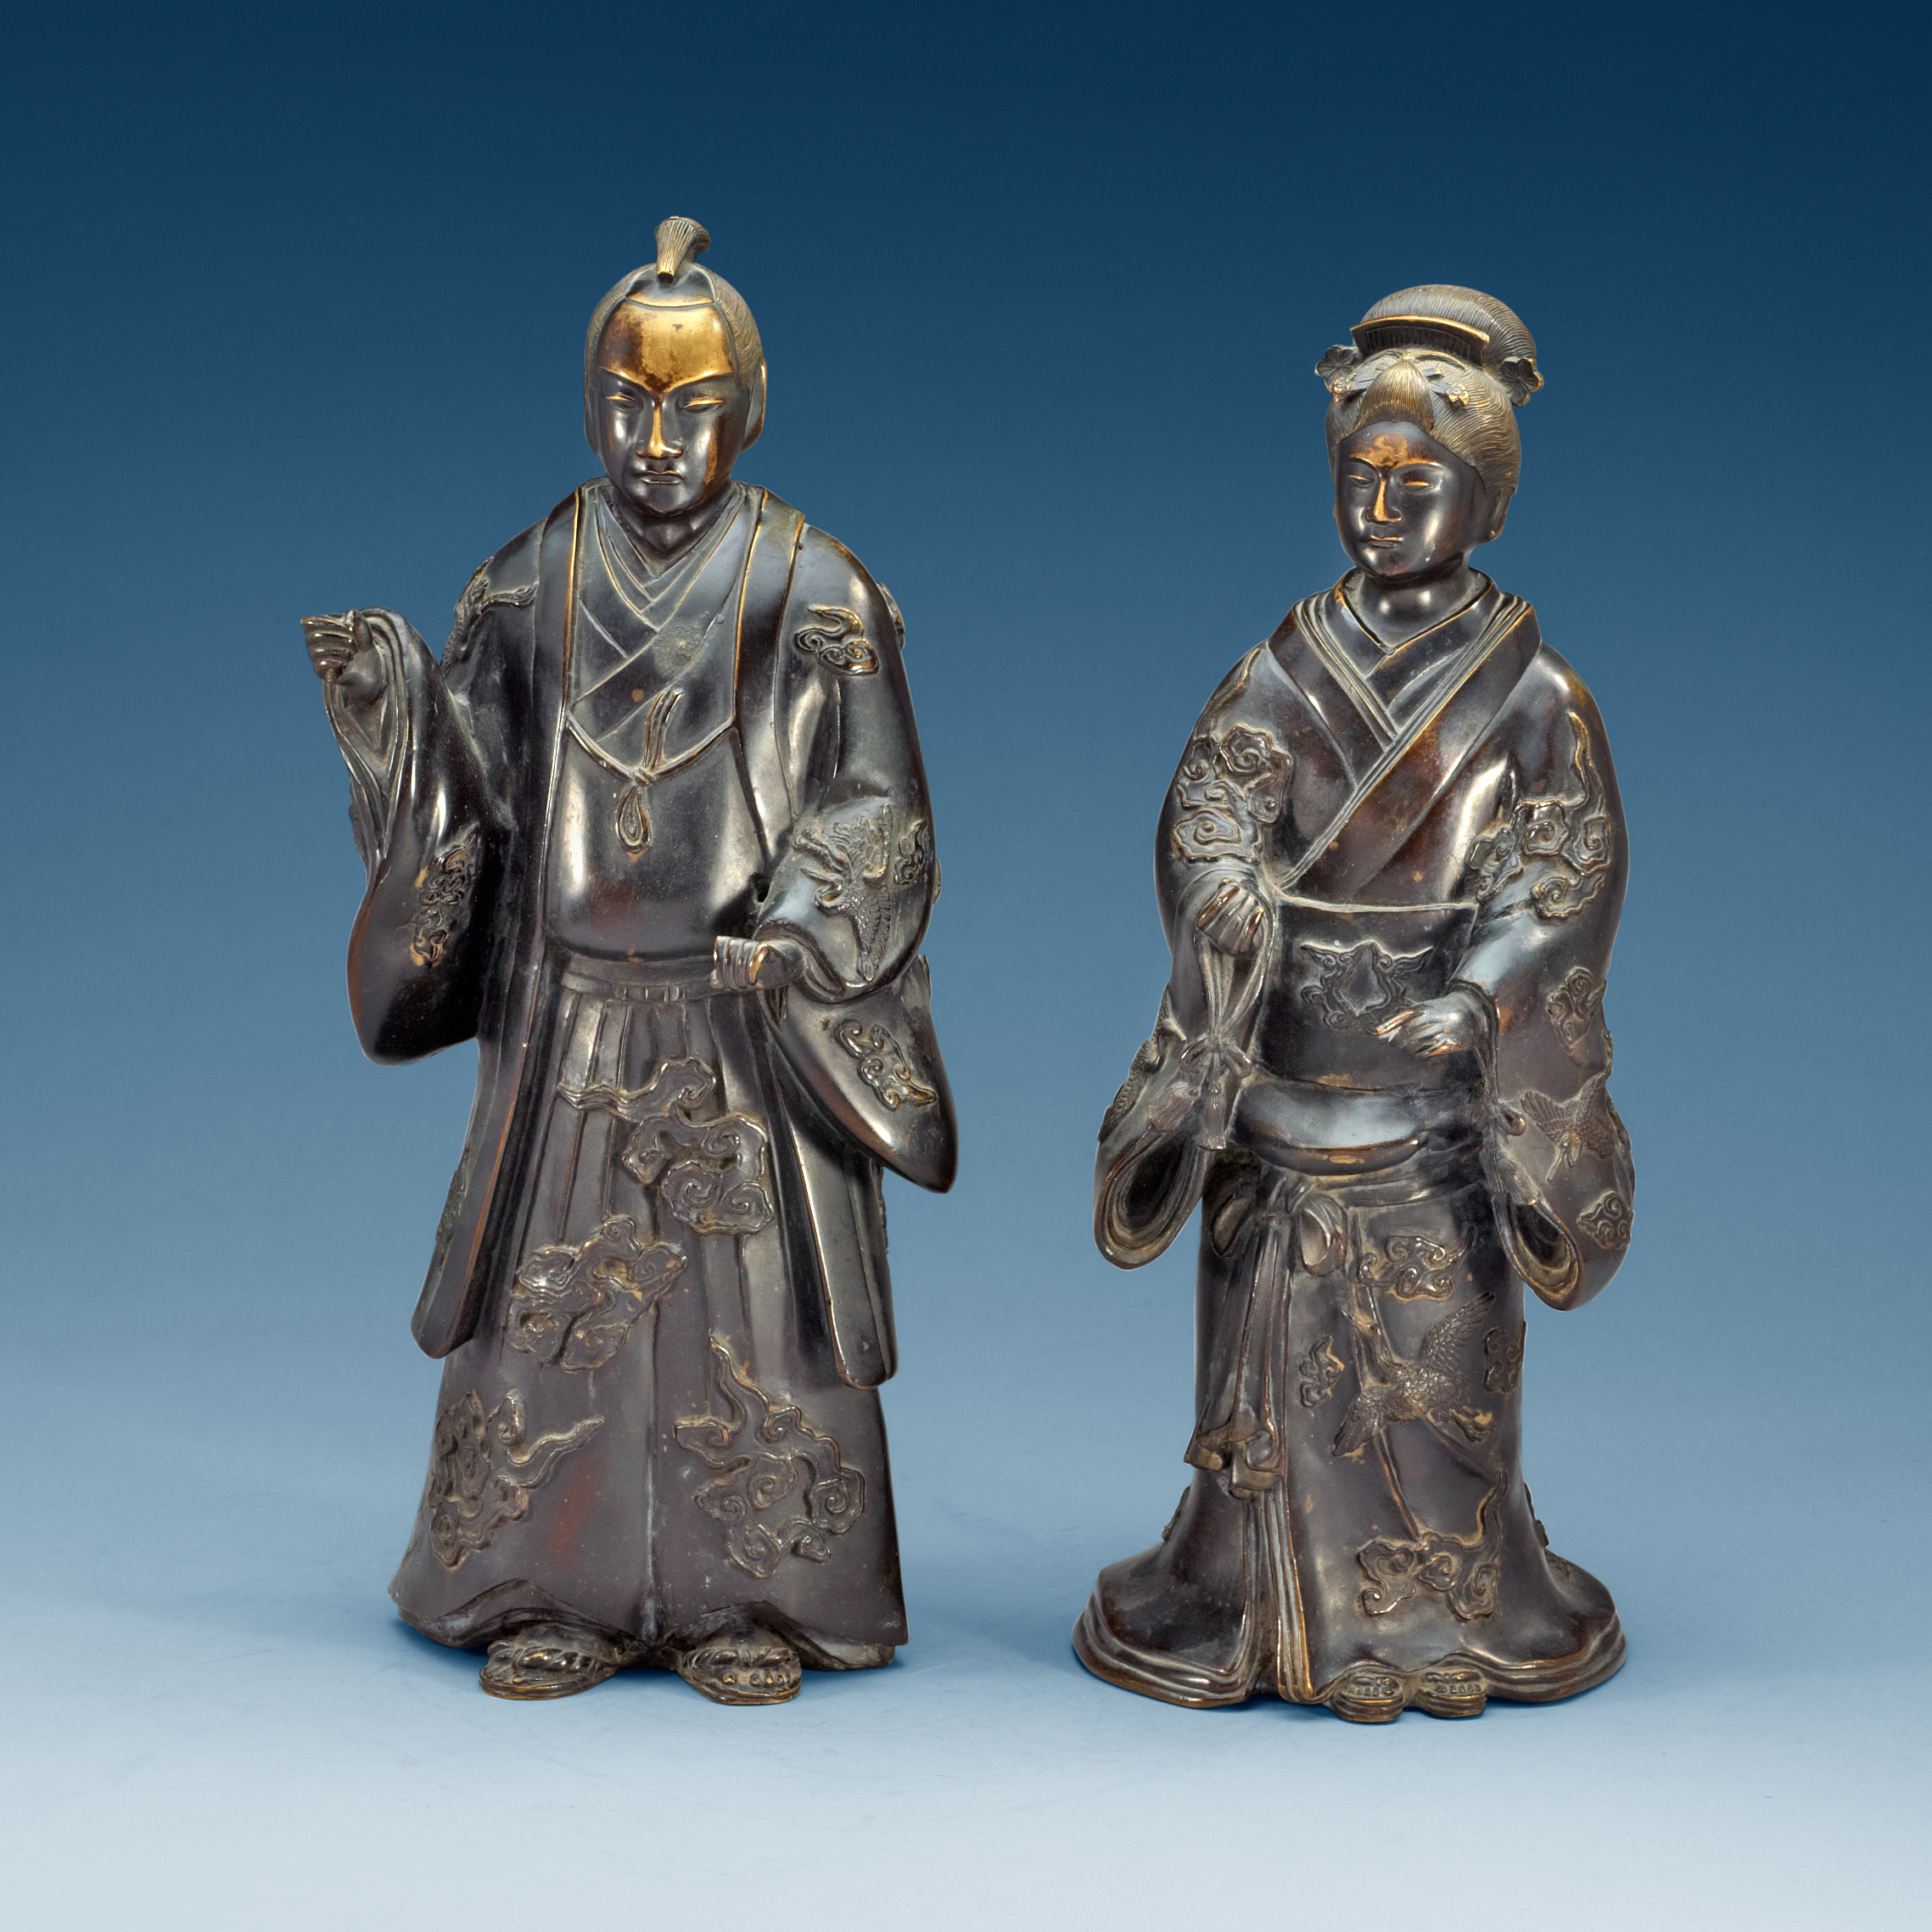 two standing japanese bronze sculptures of a samurai and elegant